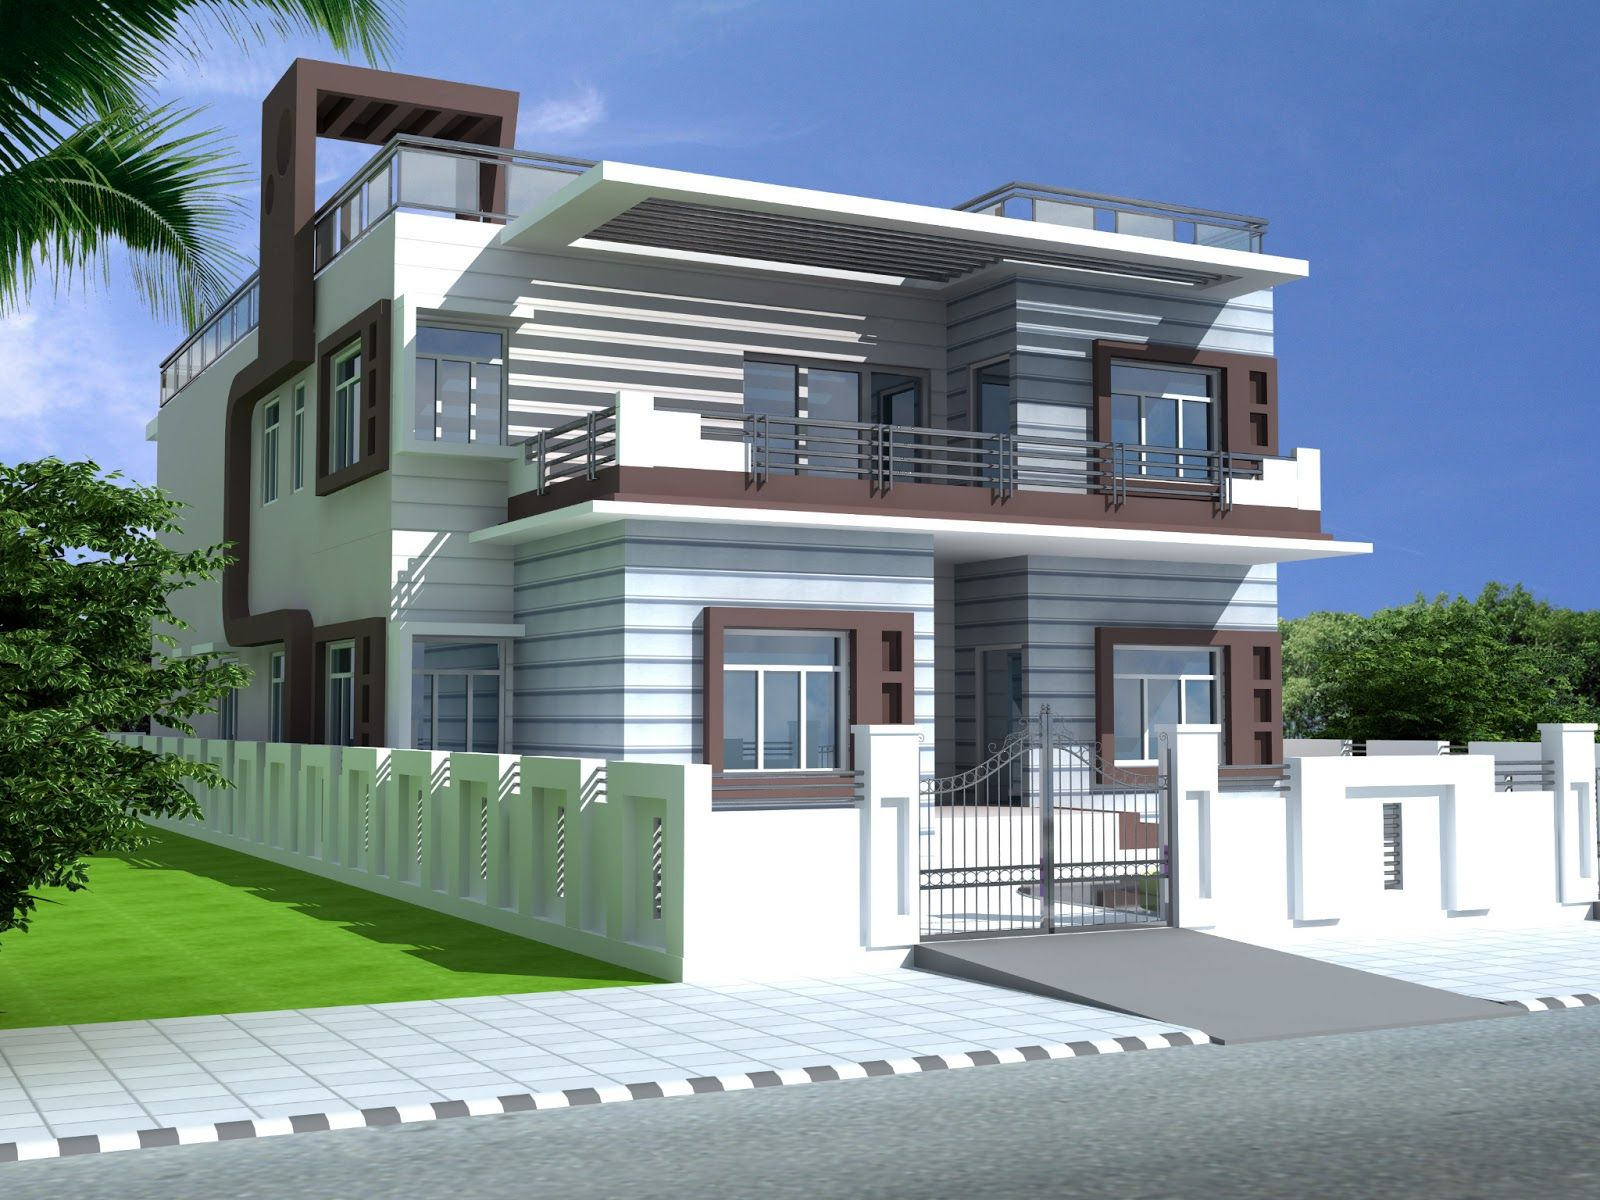 6 bedrooms duplex house design in 390m2 13m x 30m for Types of duplex houses